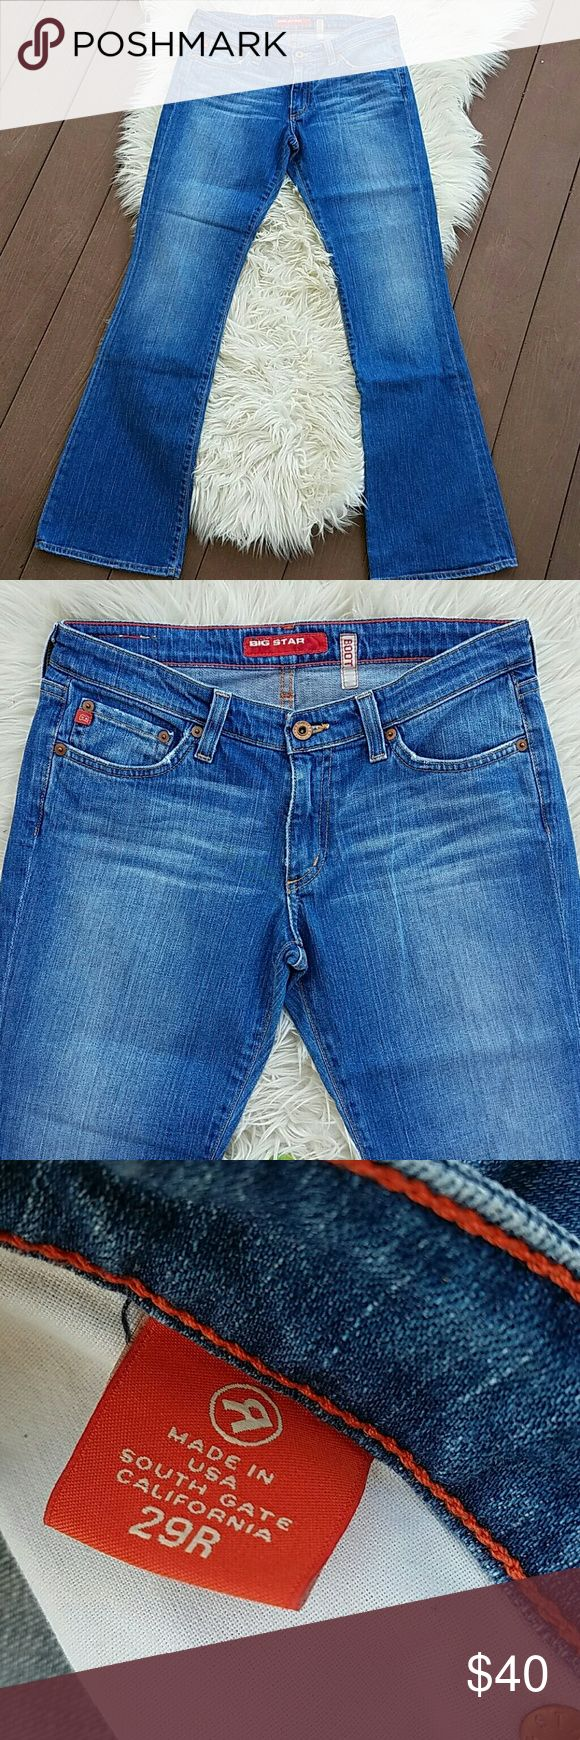 """VINTAGE BIG STAR Bootcut Jeans VINTAGE BIG STAR Bootcut Jeans. Great condition!  Size 29 R , Inseam 32.5"""", Waist flat 16"""", Rise 8"""" Big Star Jeans Boot Cut"""